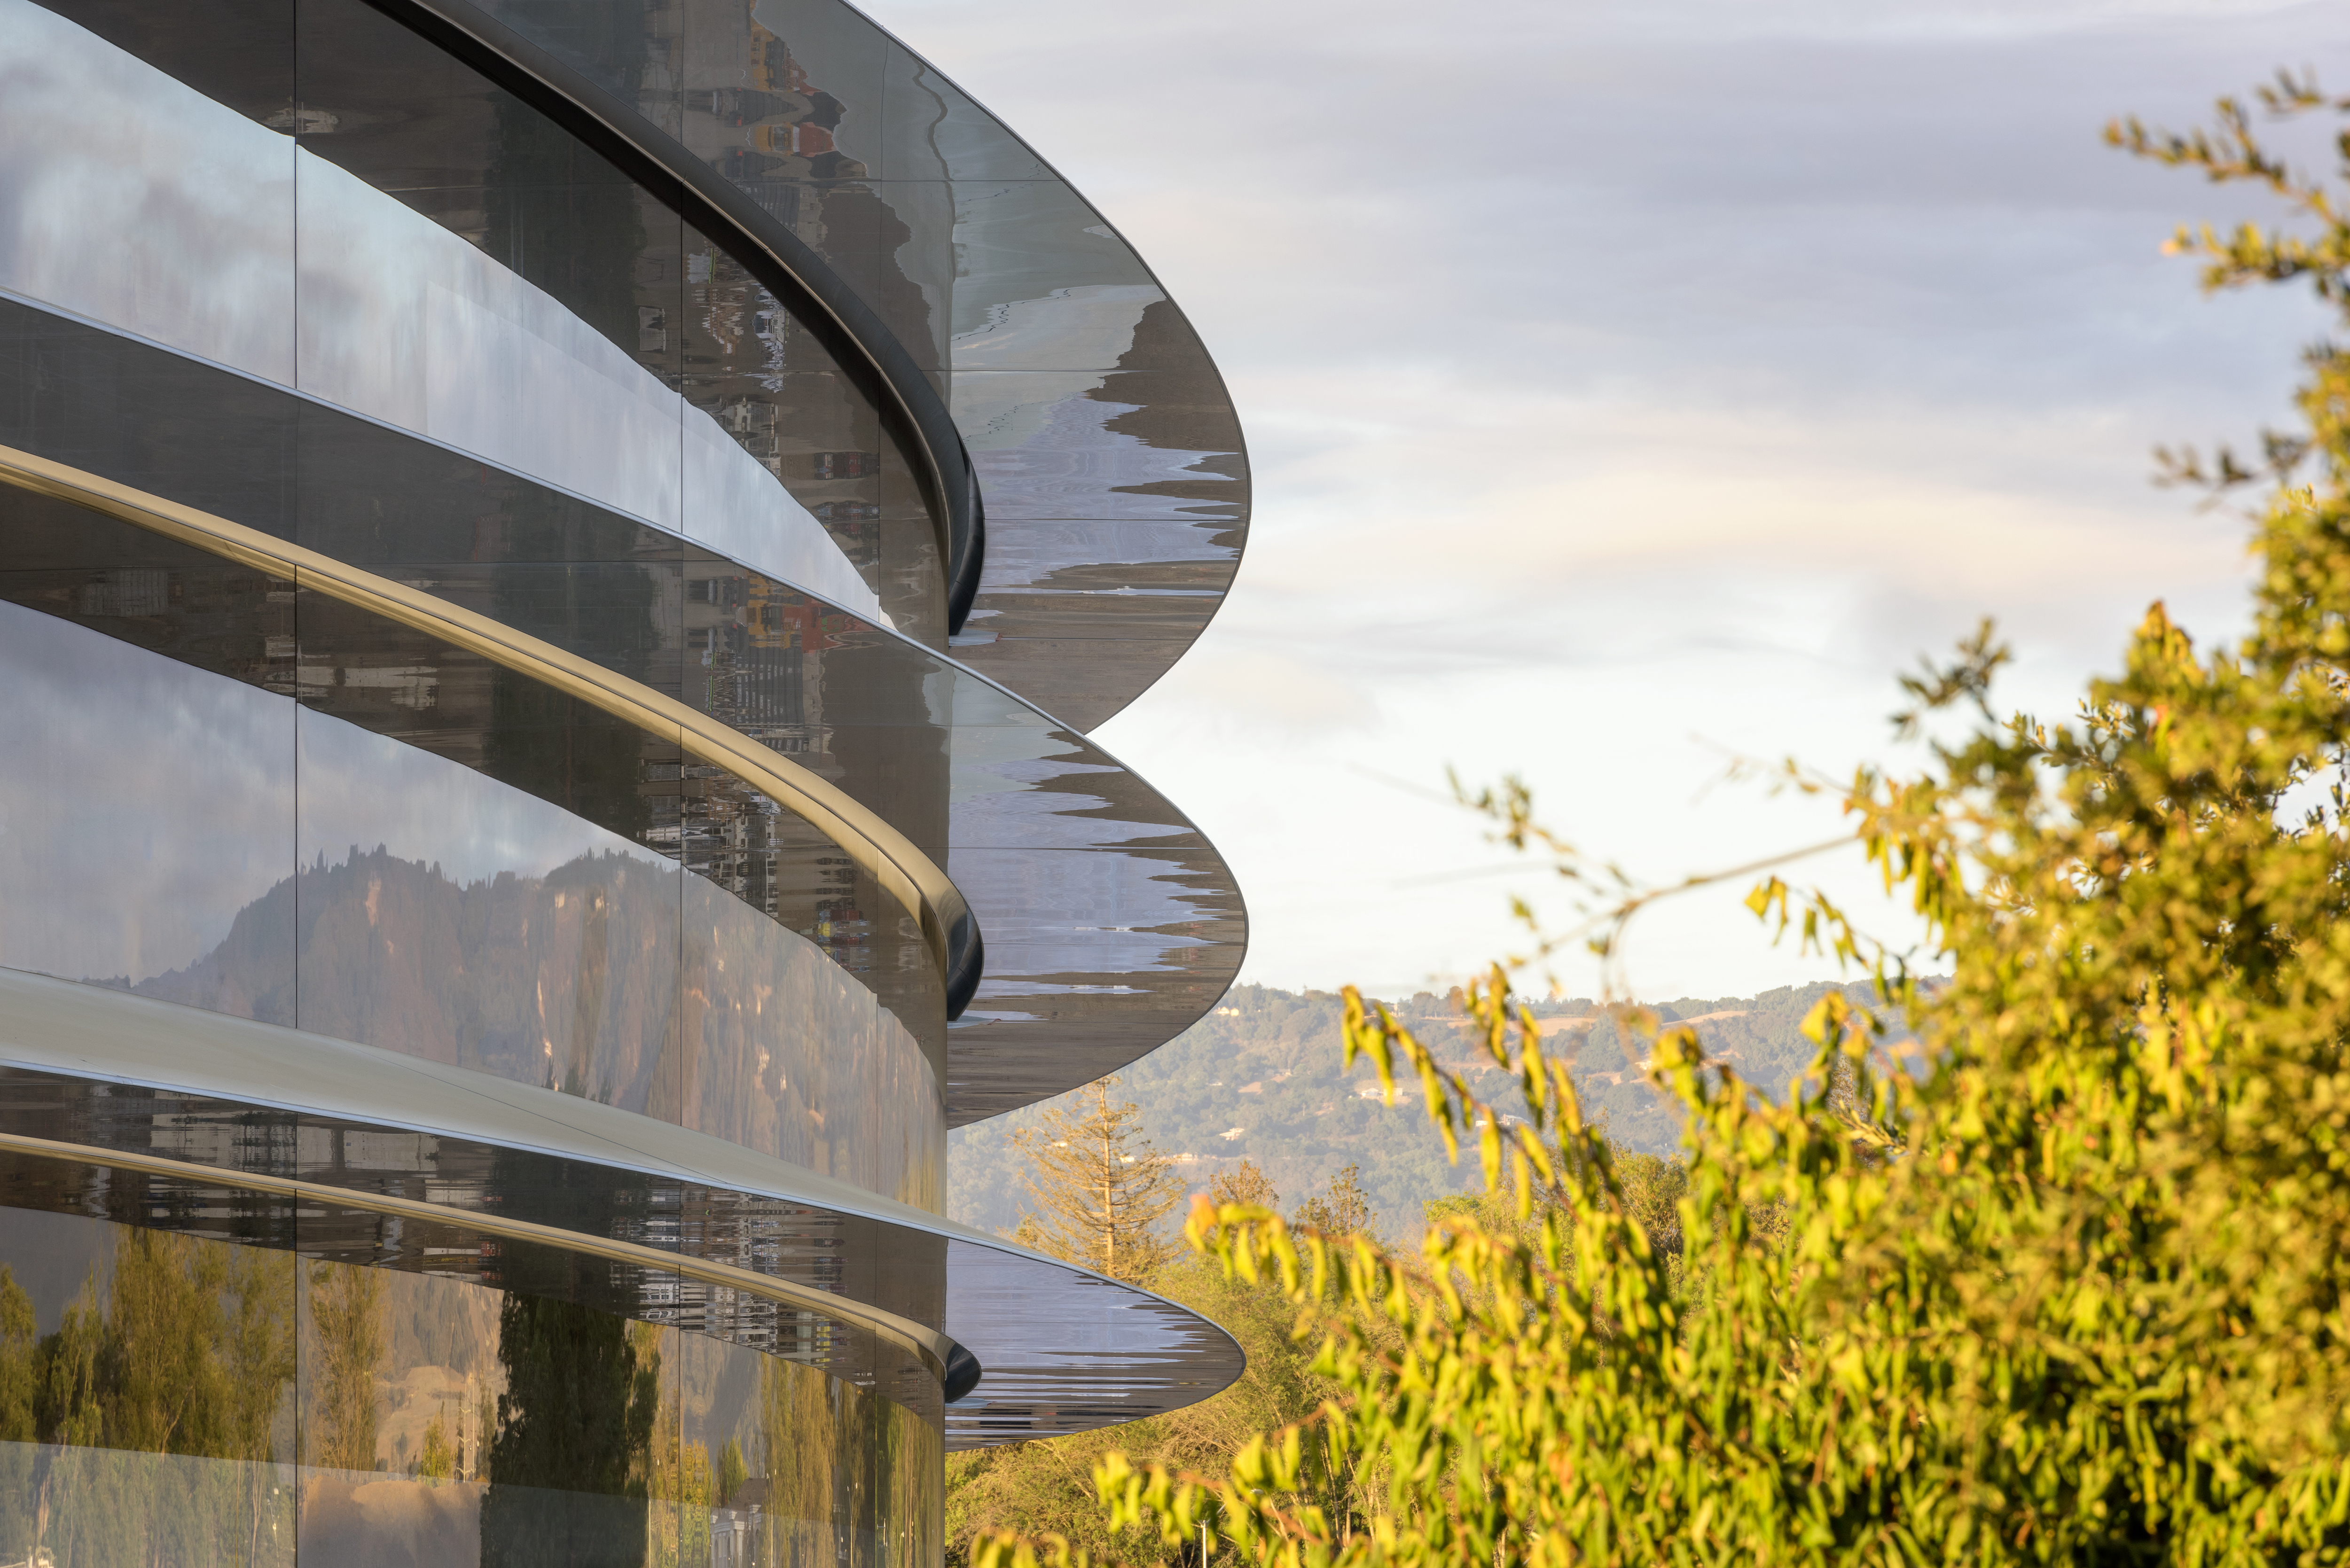 Apple HQ2: Where Will the iPhone Maker's Second Campus Go? | Fortune